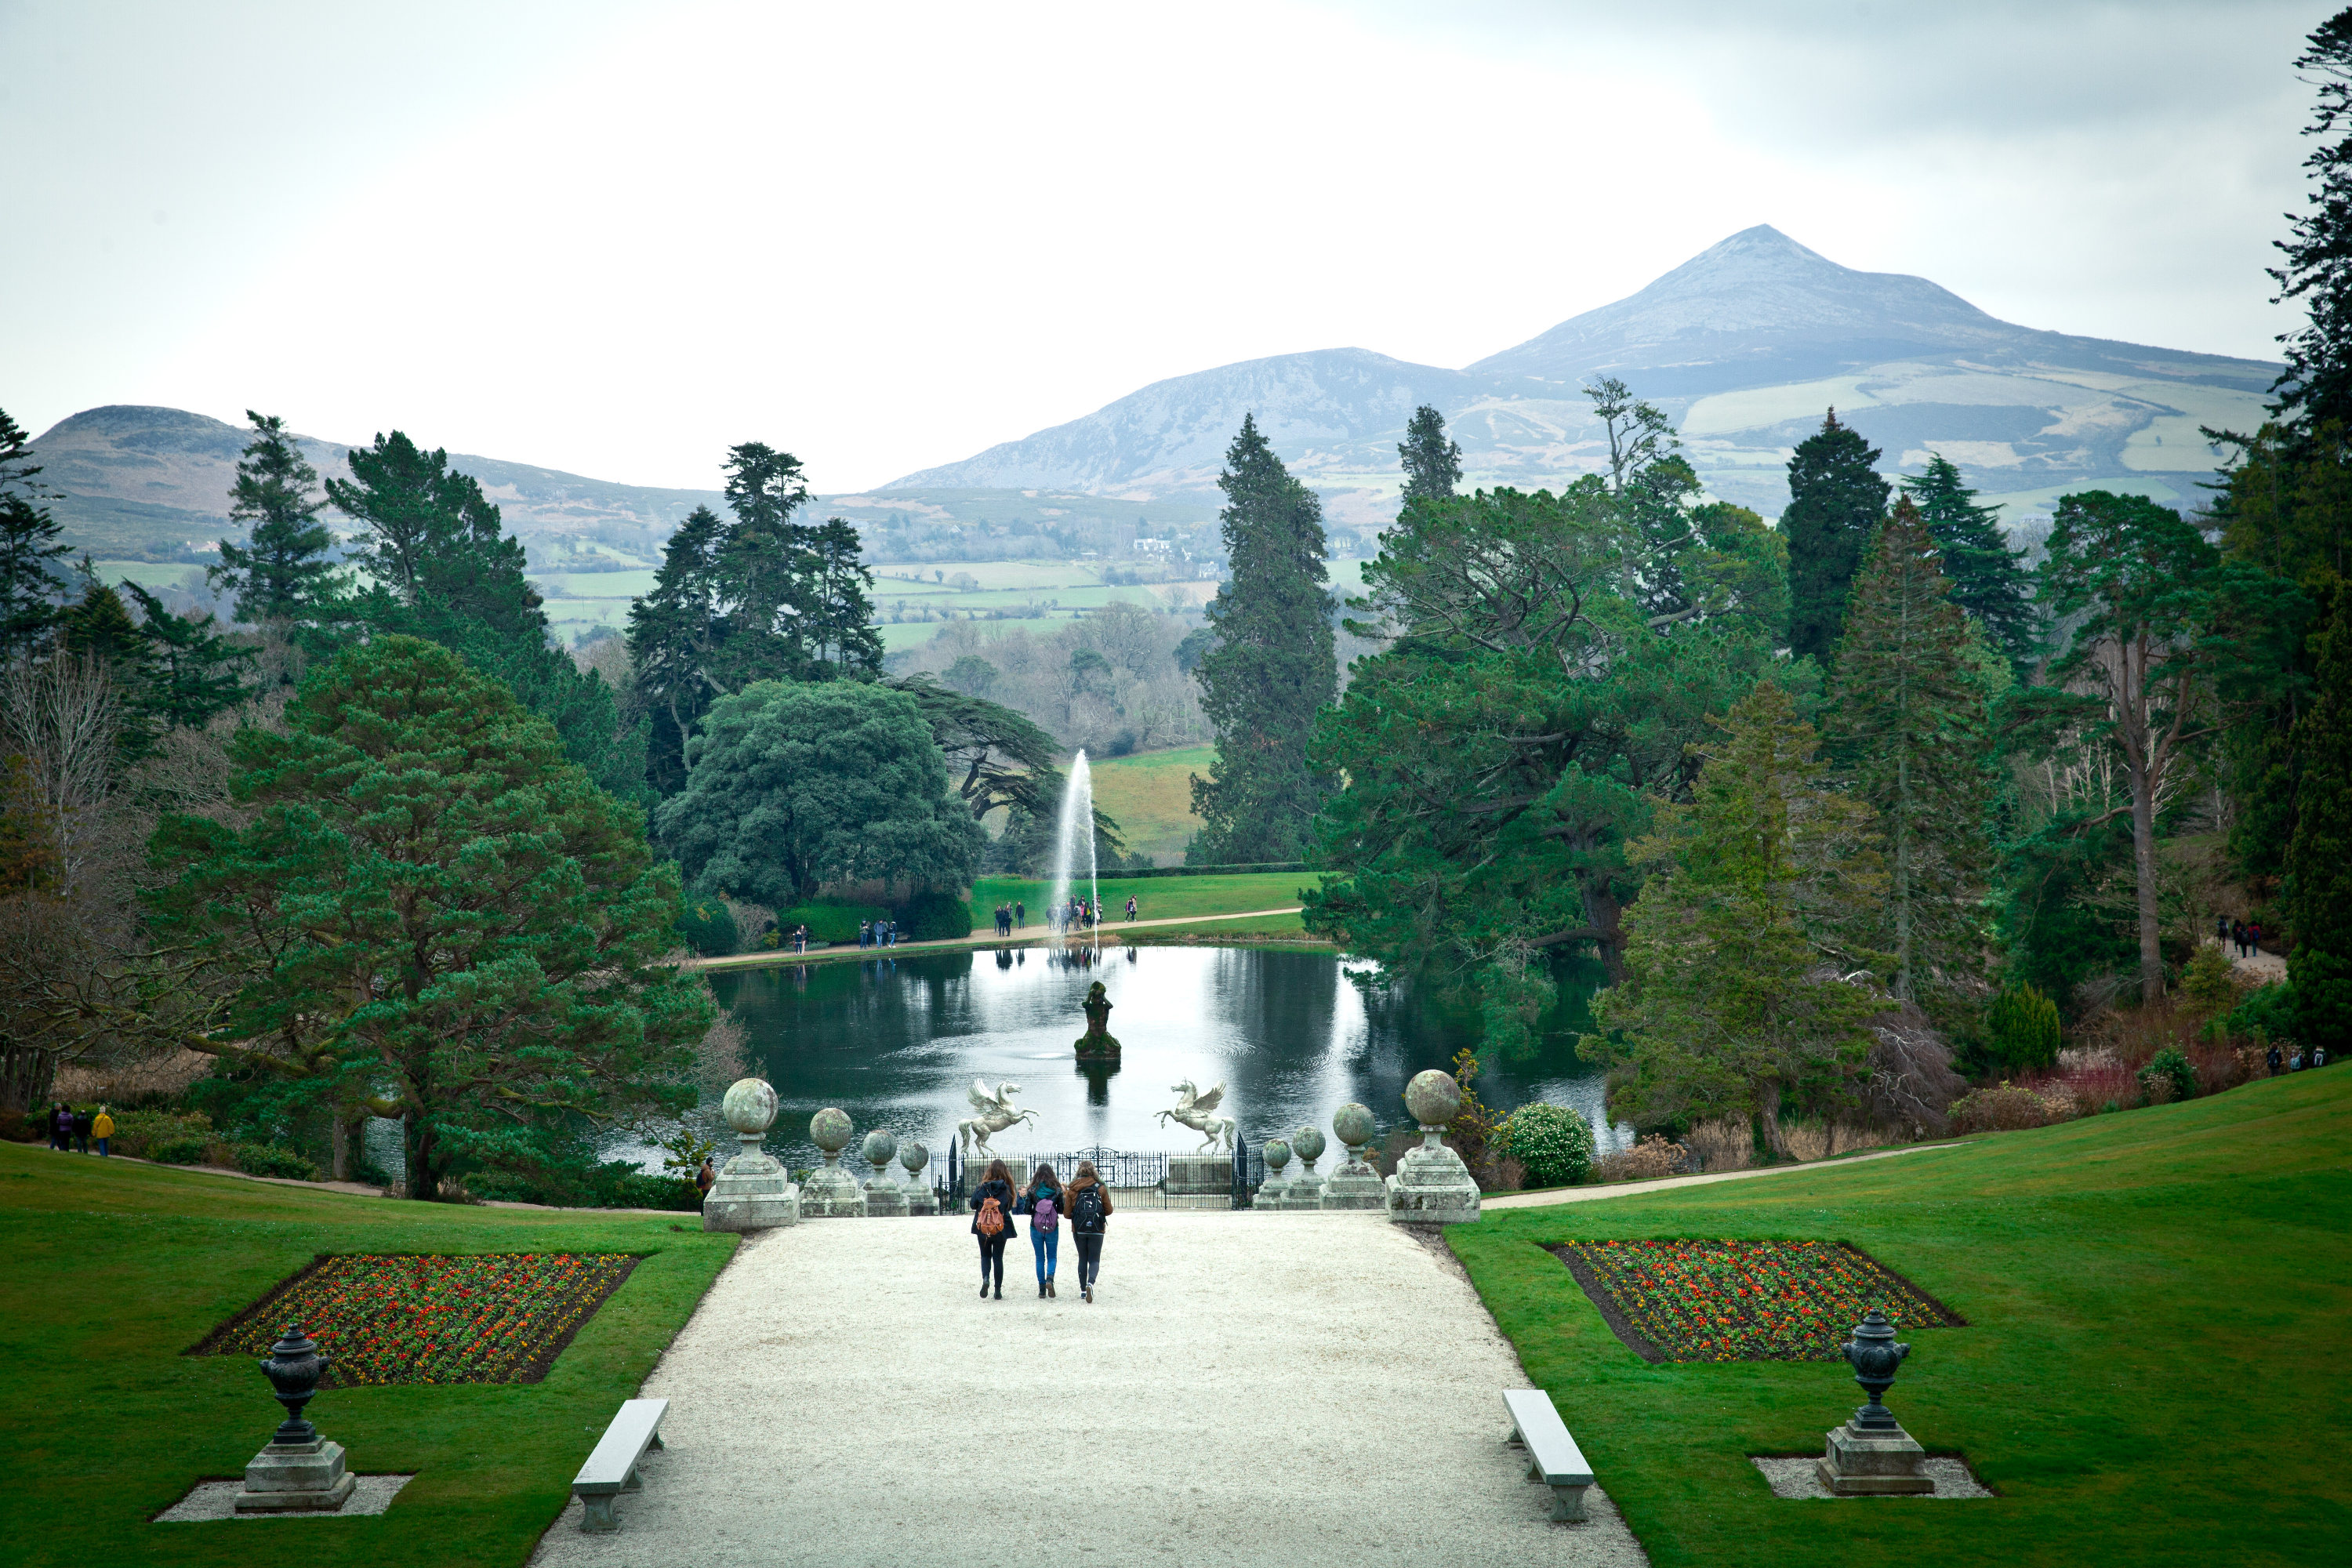 The centre is located at Powerscourt House in County Wicklow, Ireland.